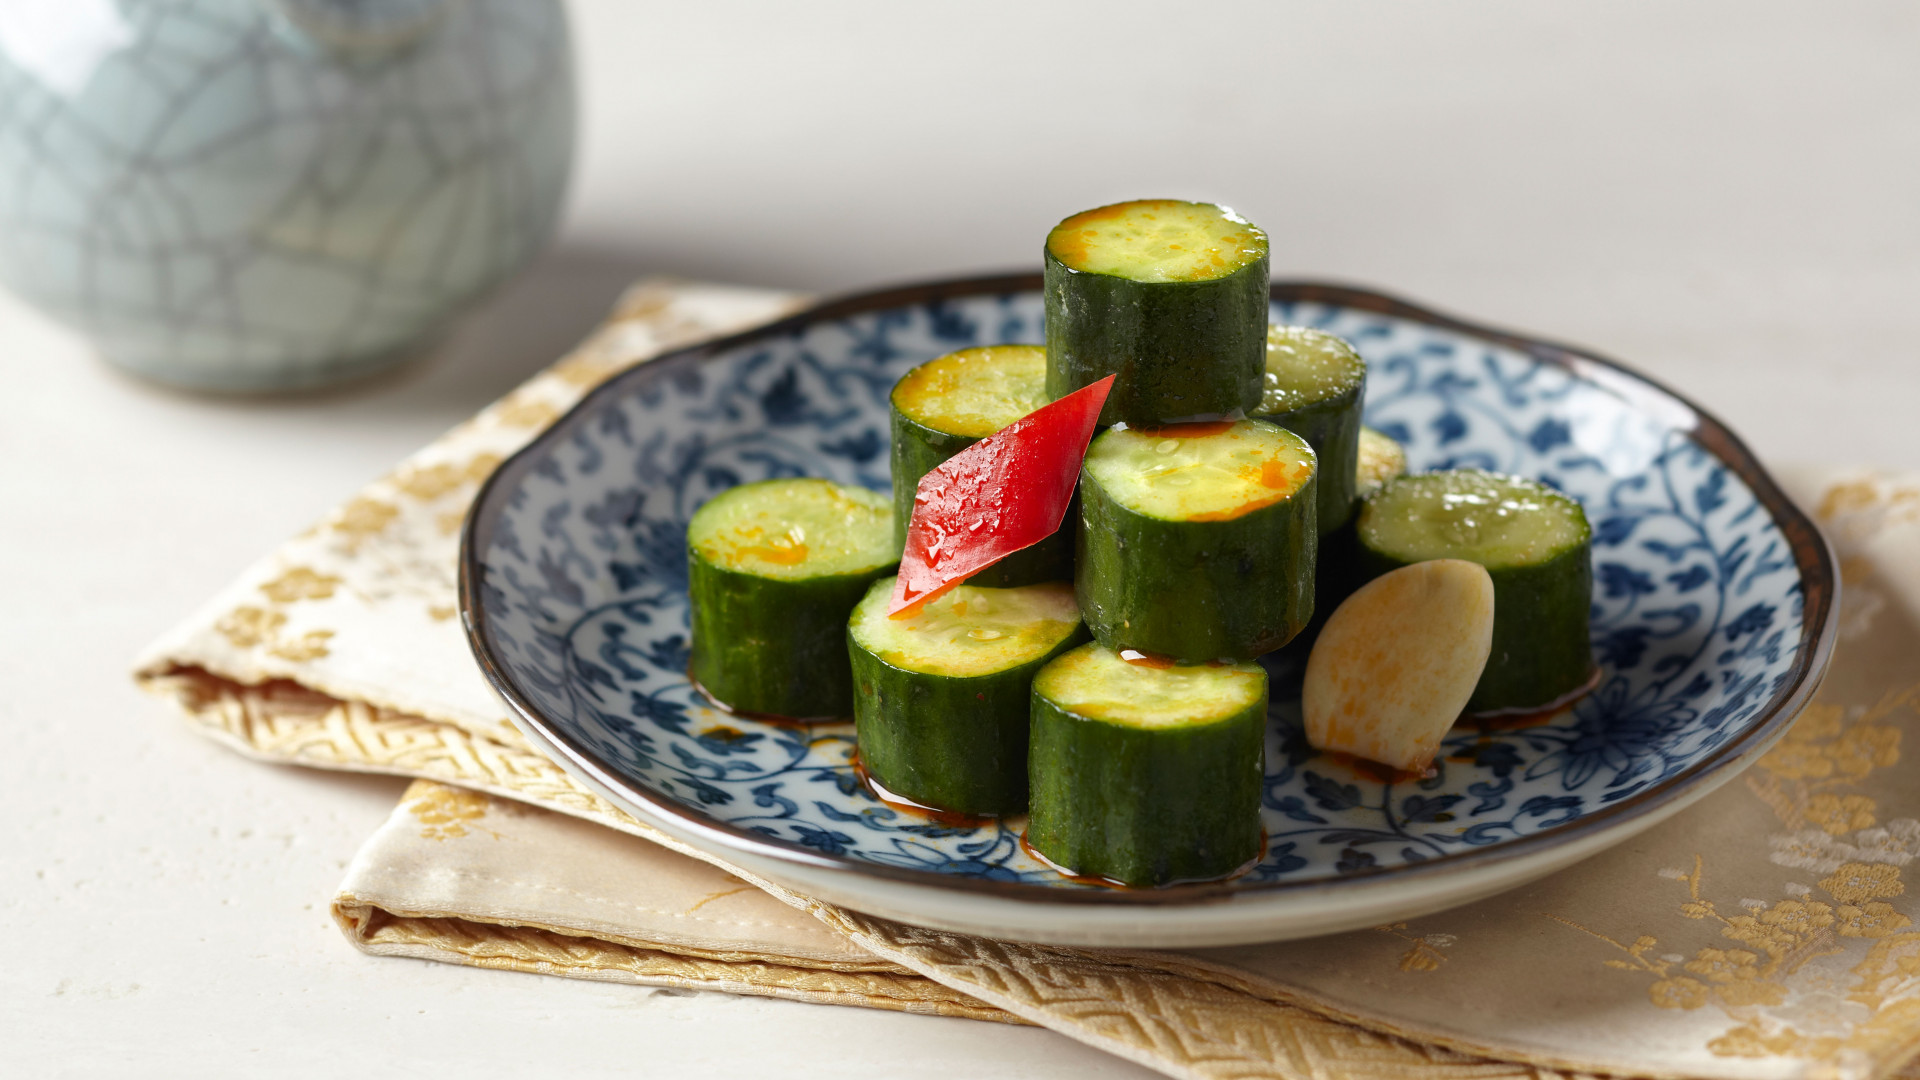 Cucumber dressed in garlic and chilli oil